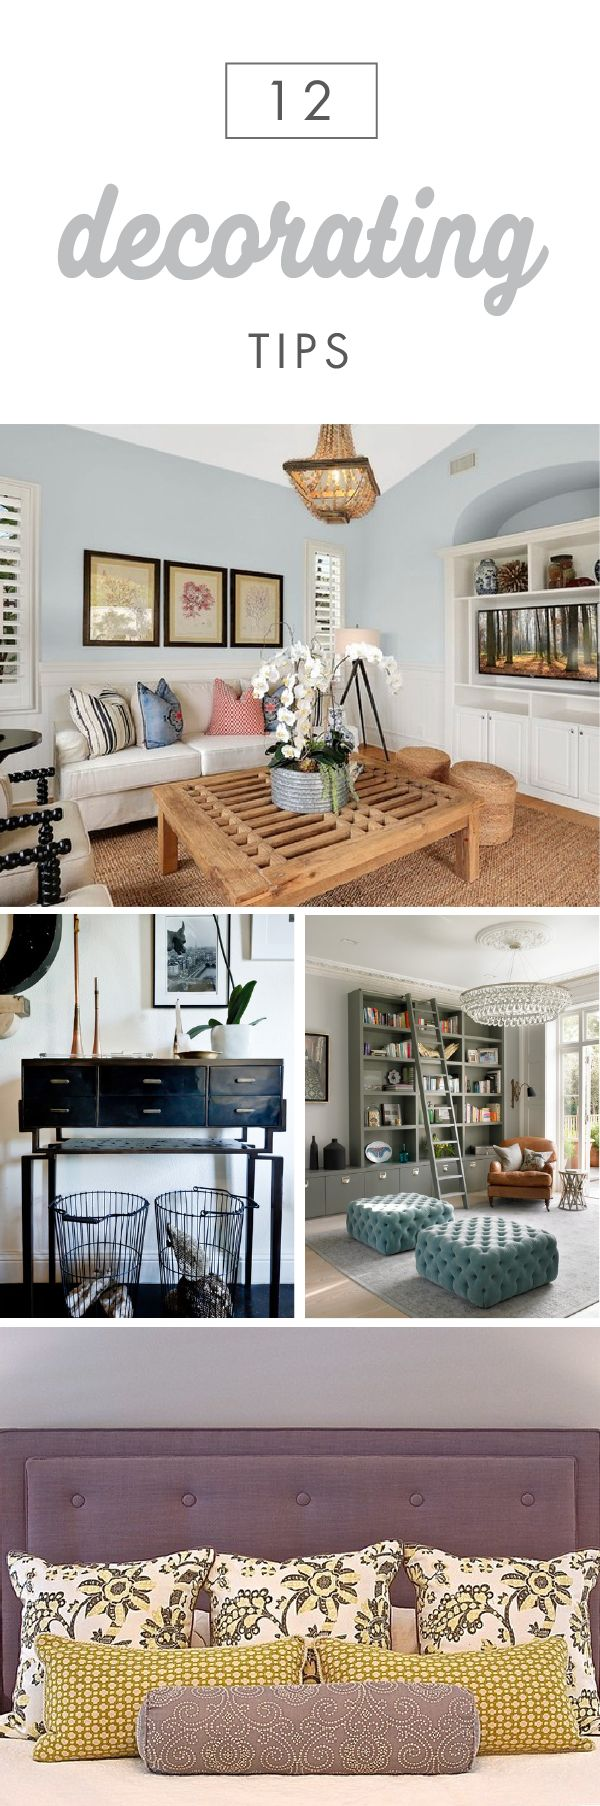 Sometimes You Just Need A Home Decor Refresh. This Collection Of 12  Decorating Tips From